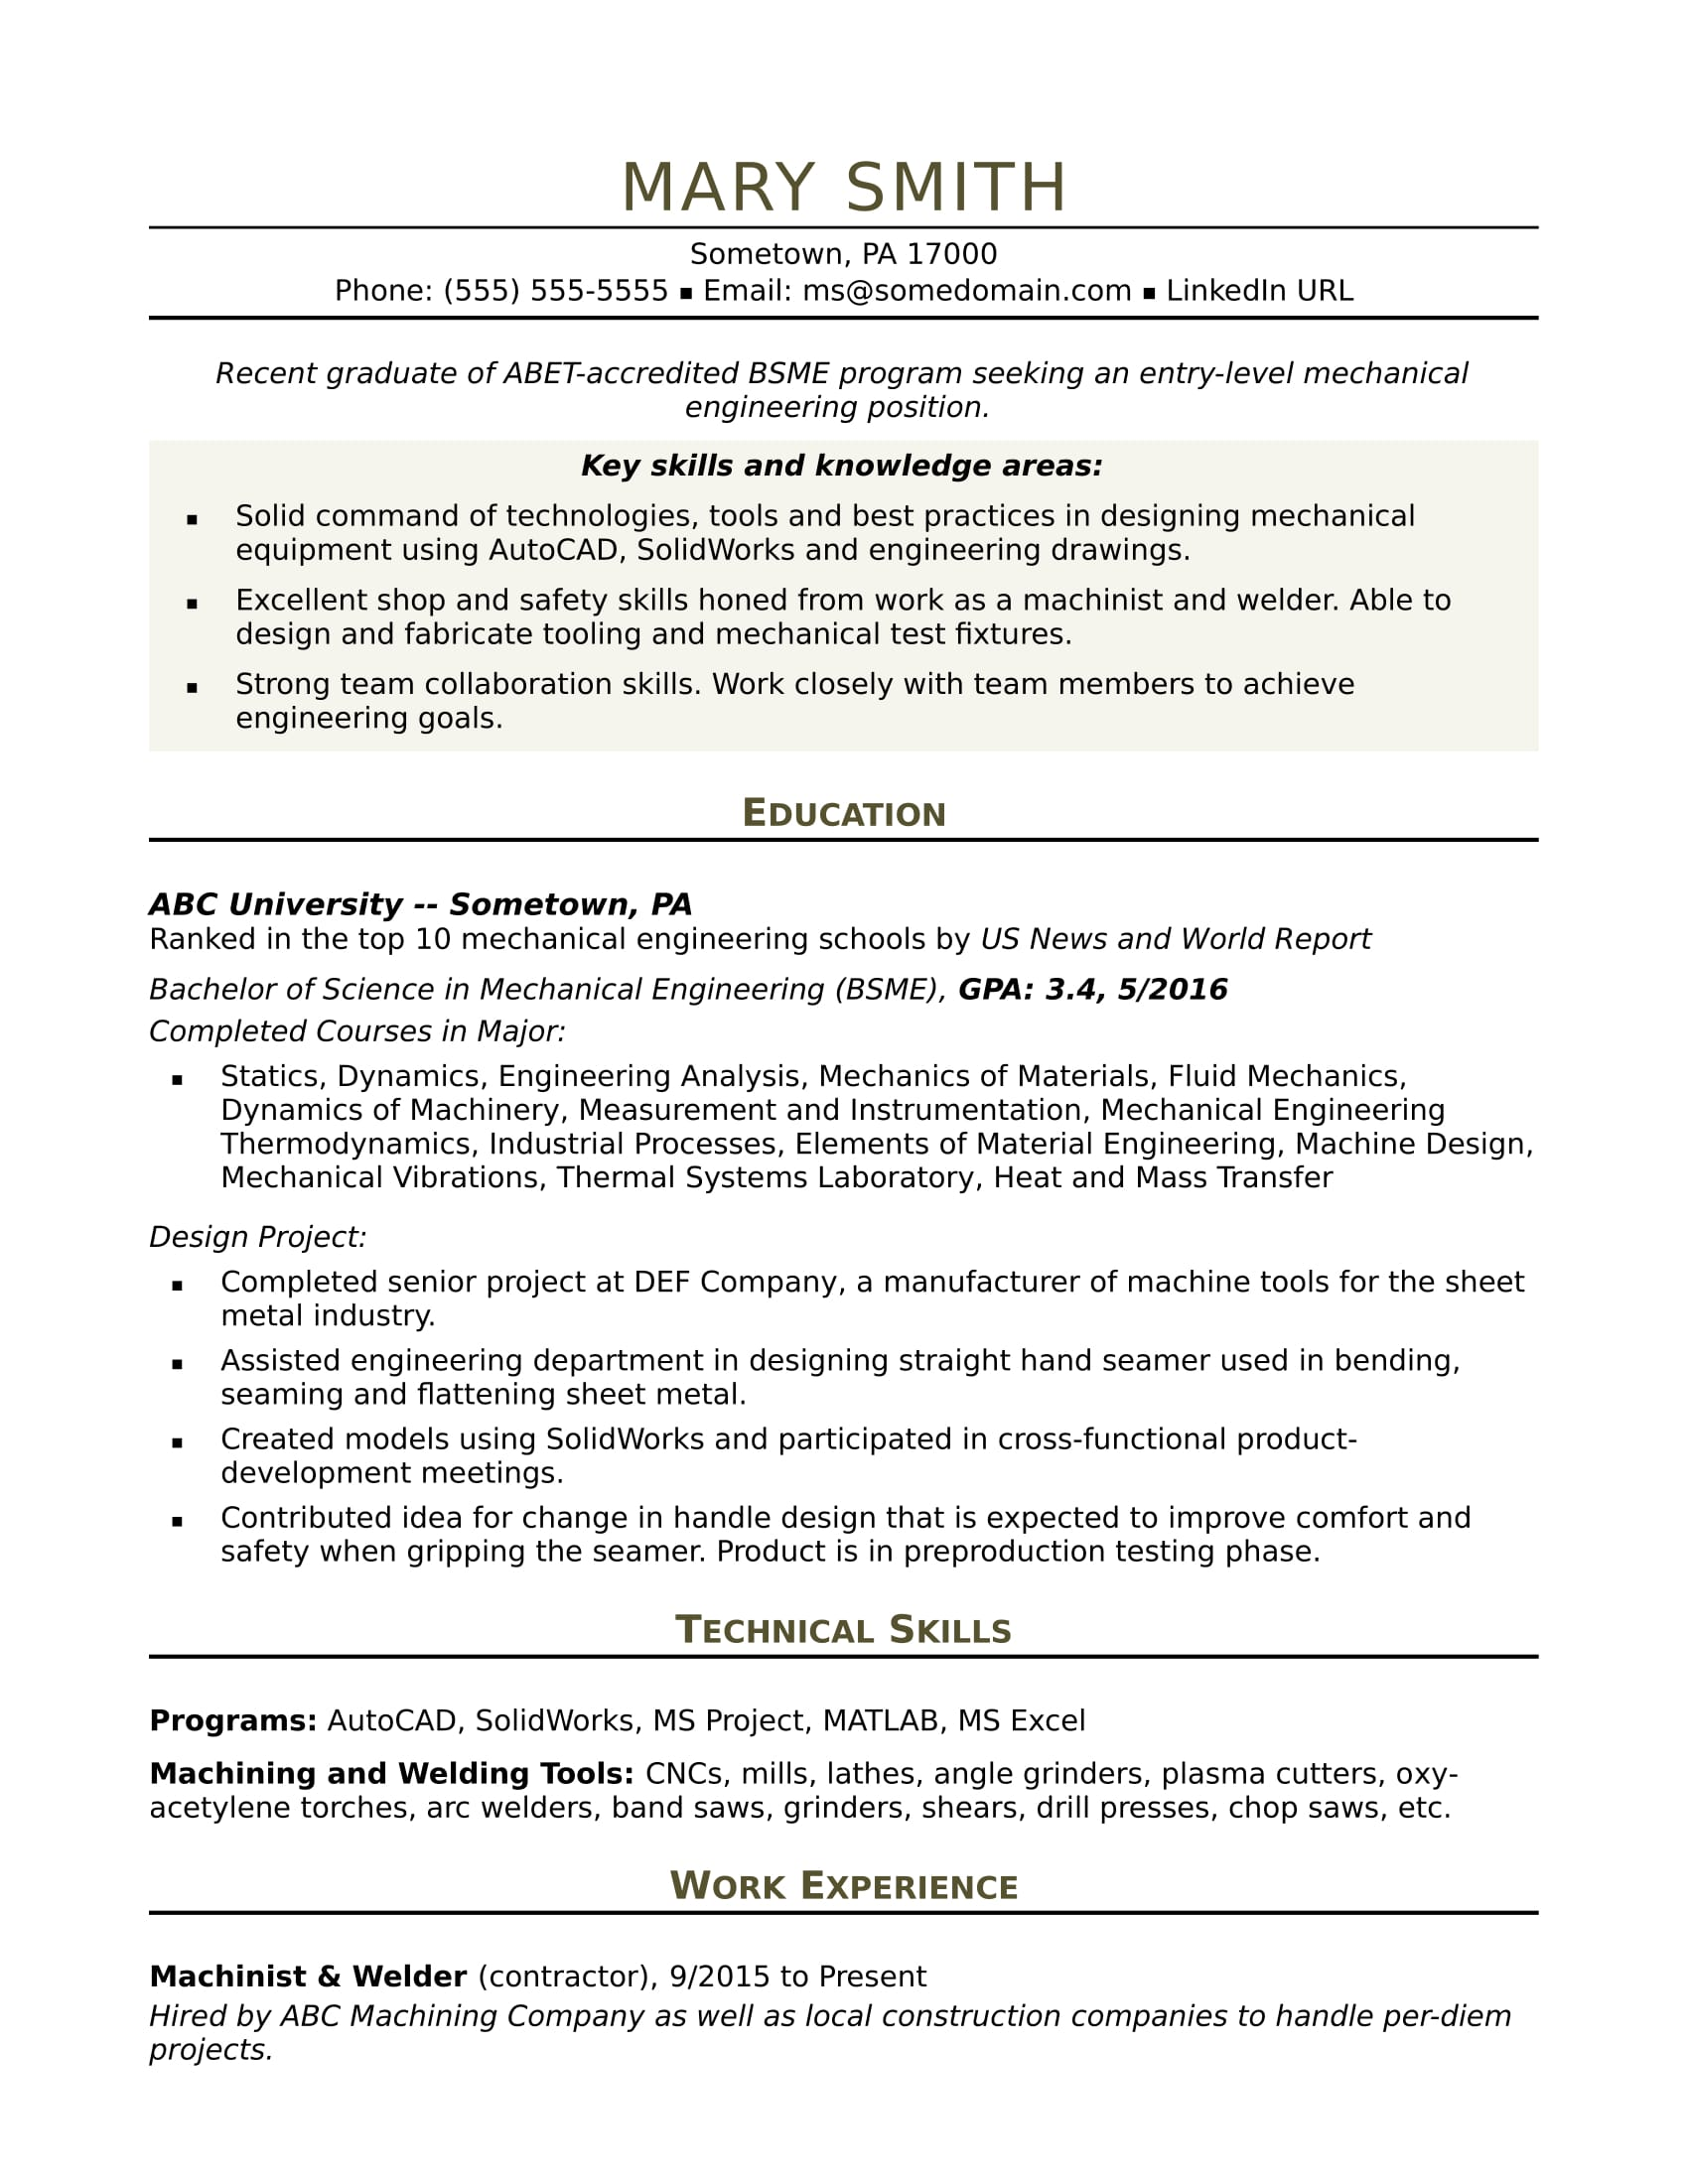 sample resume for an entry level mechanical engineer monster engineering student template Resume Engineering Student Resume Template